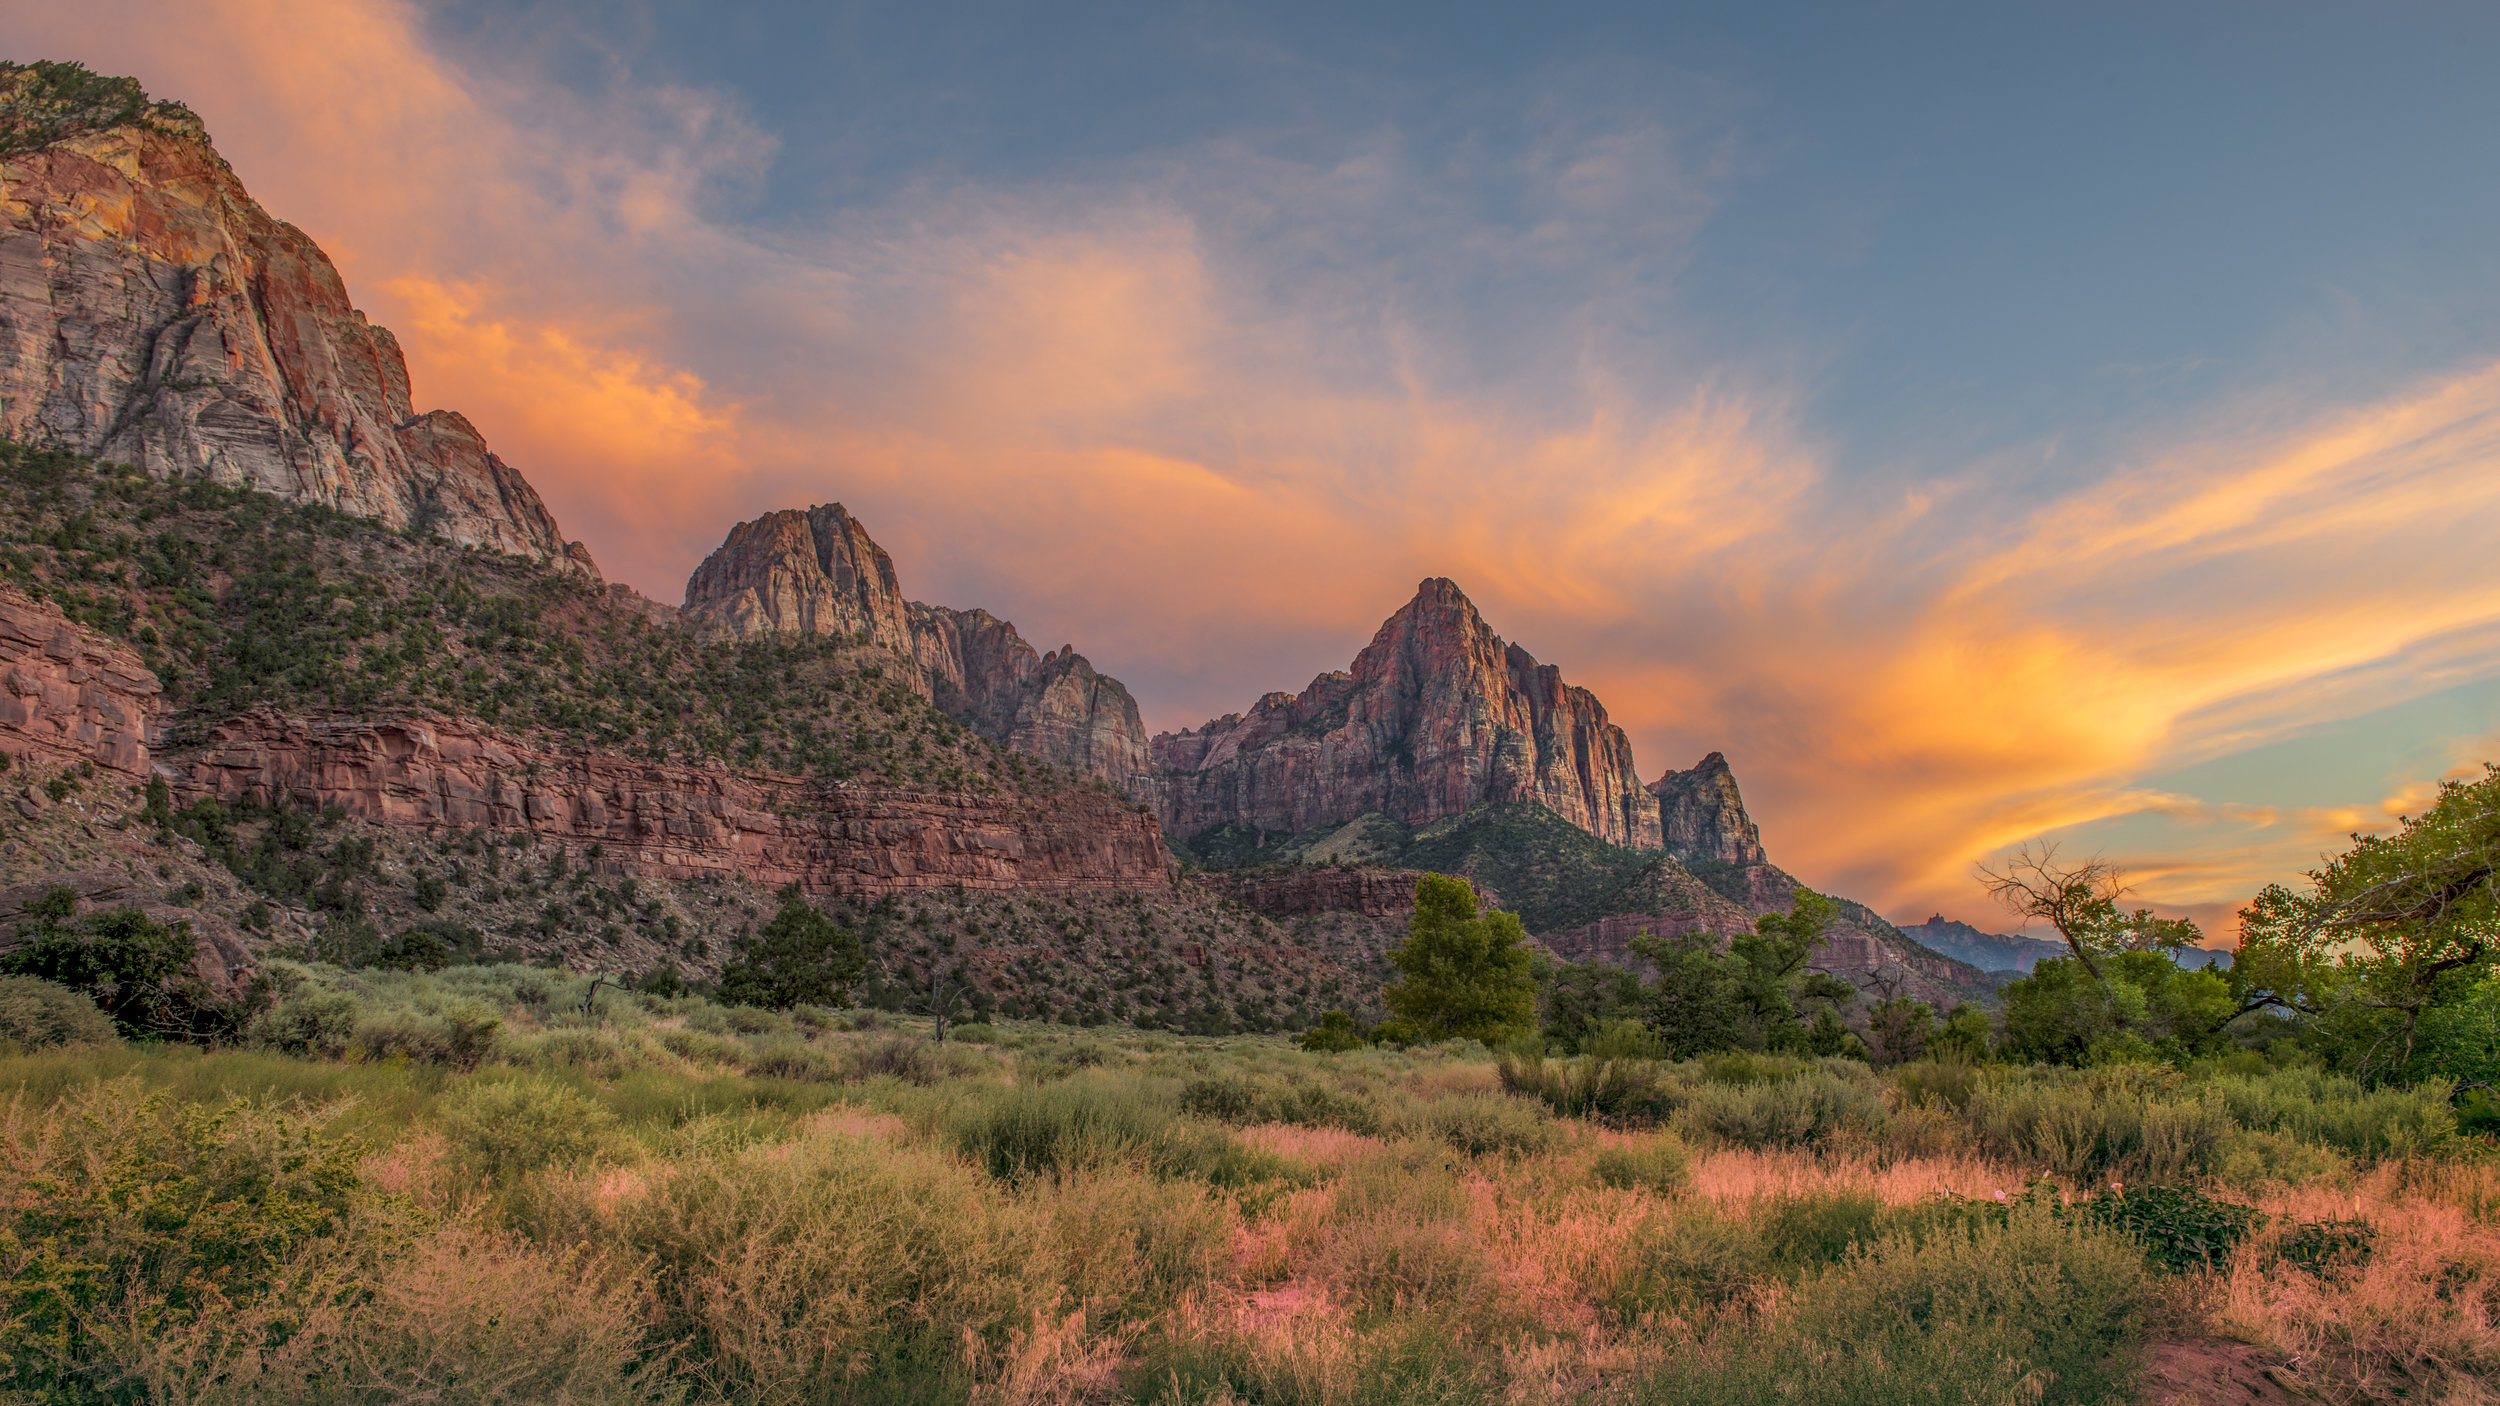 "The Watchman, Zion National Park, USA ISO50 F11 0.4"" at 24mm"